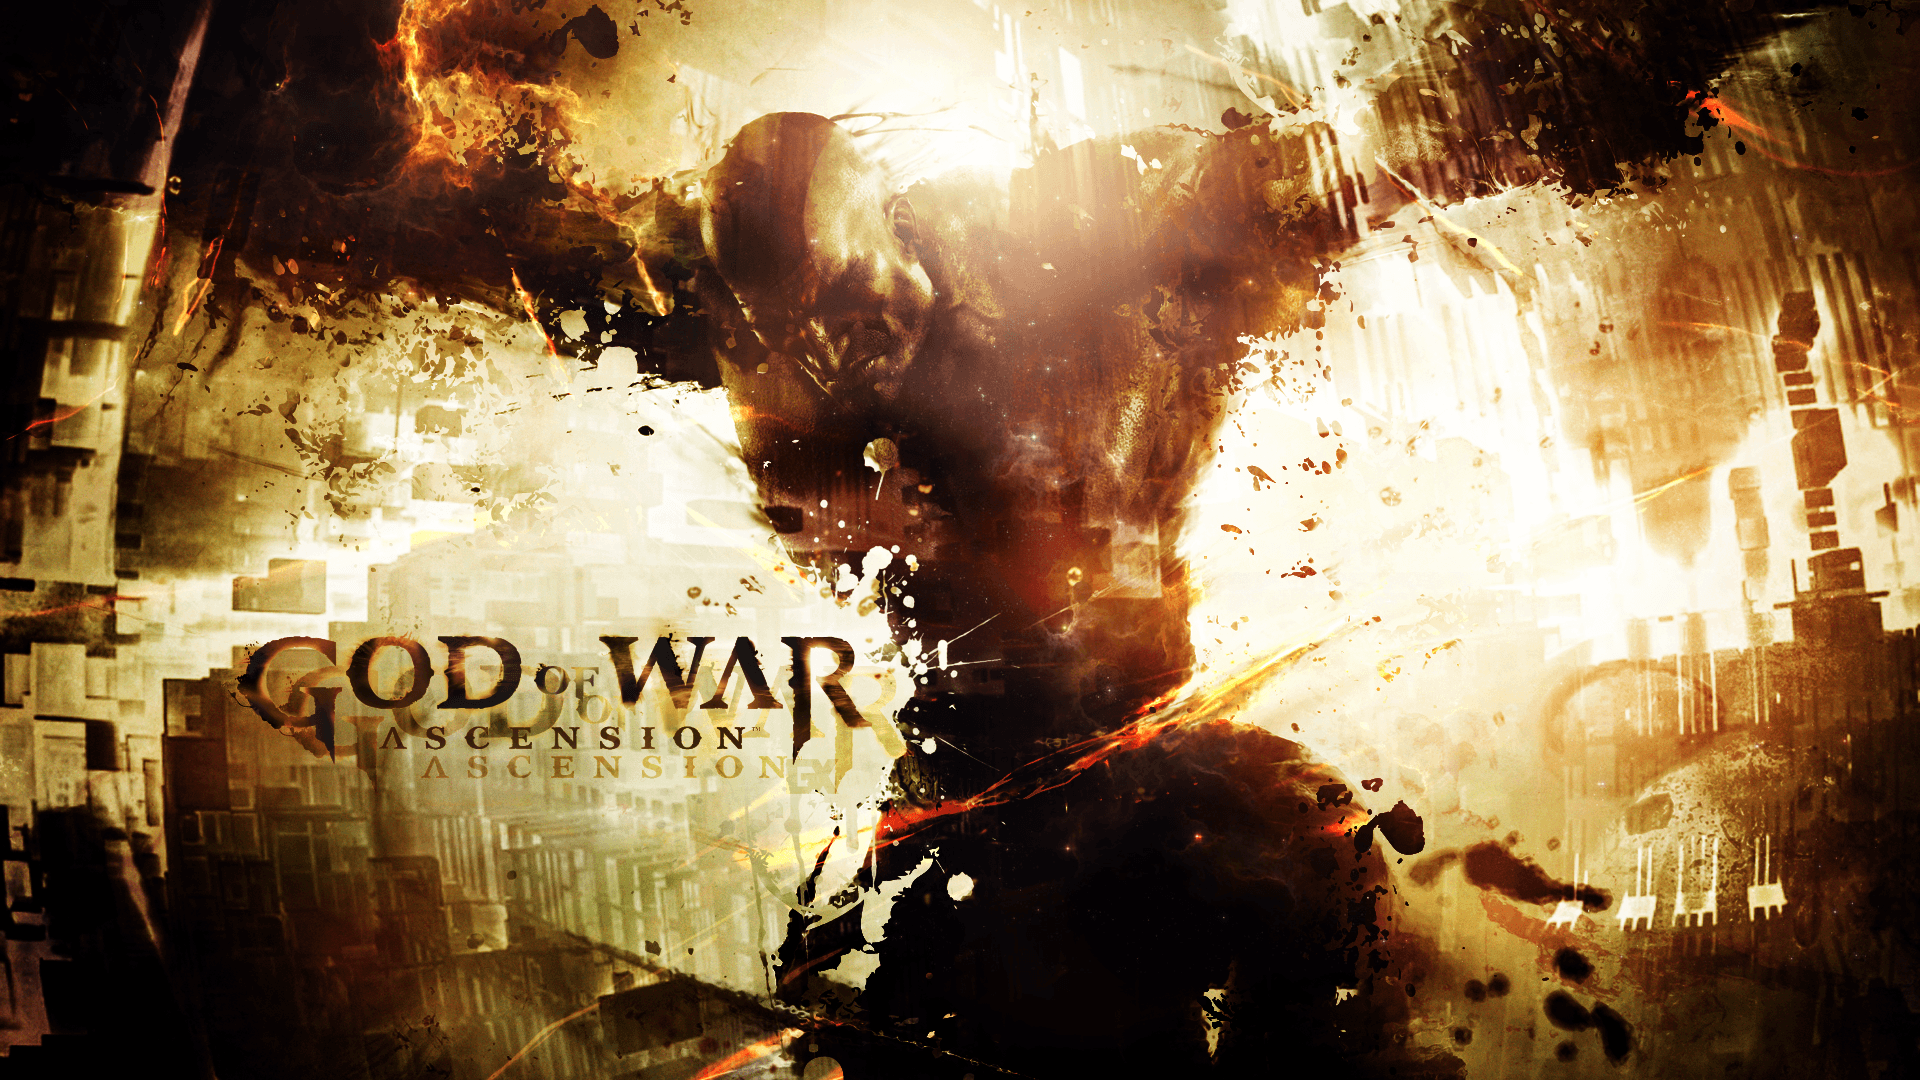 80 God Of War Hd Wallpapers Dog Of War 4 272016 Hd